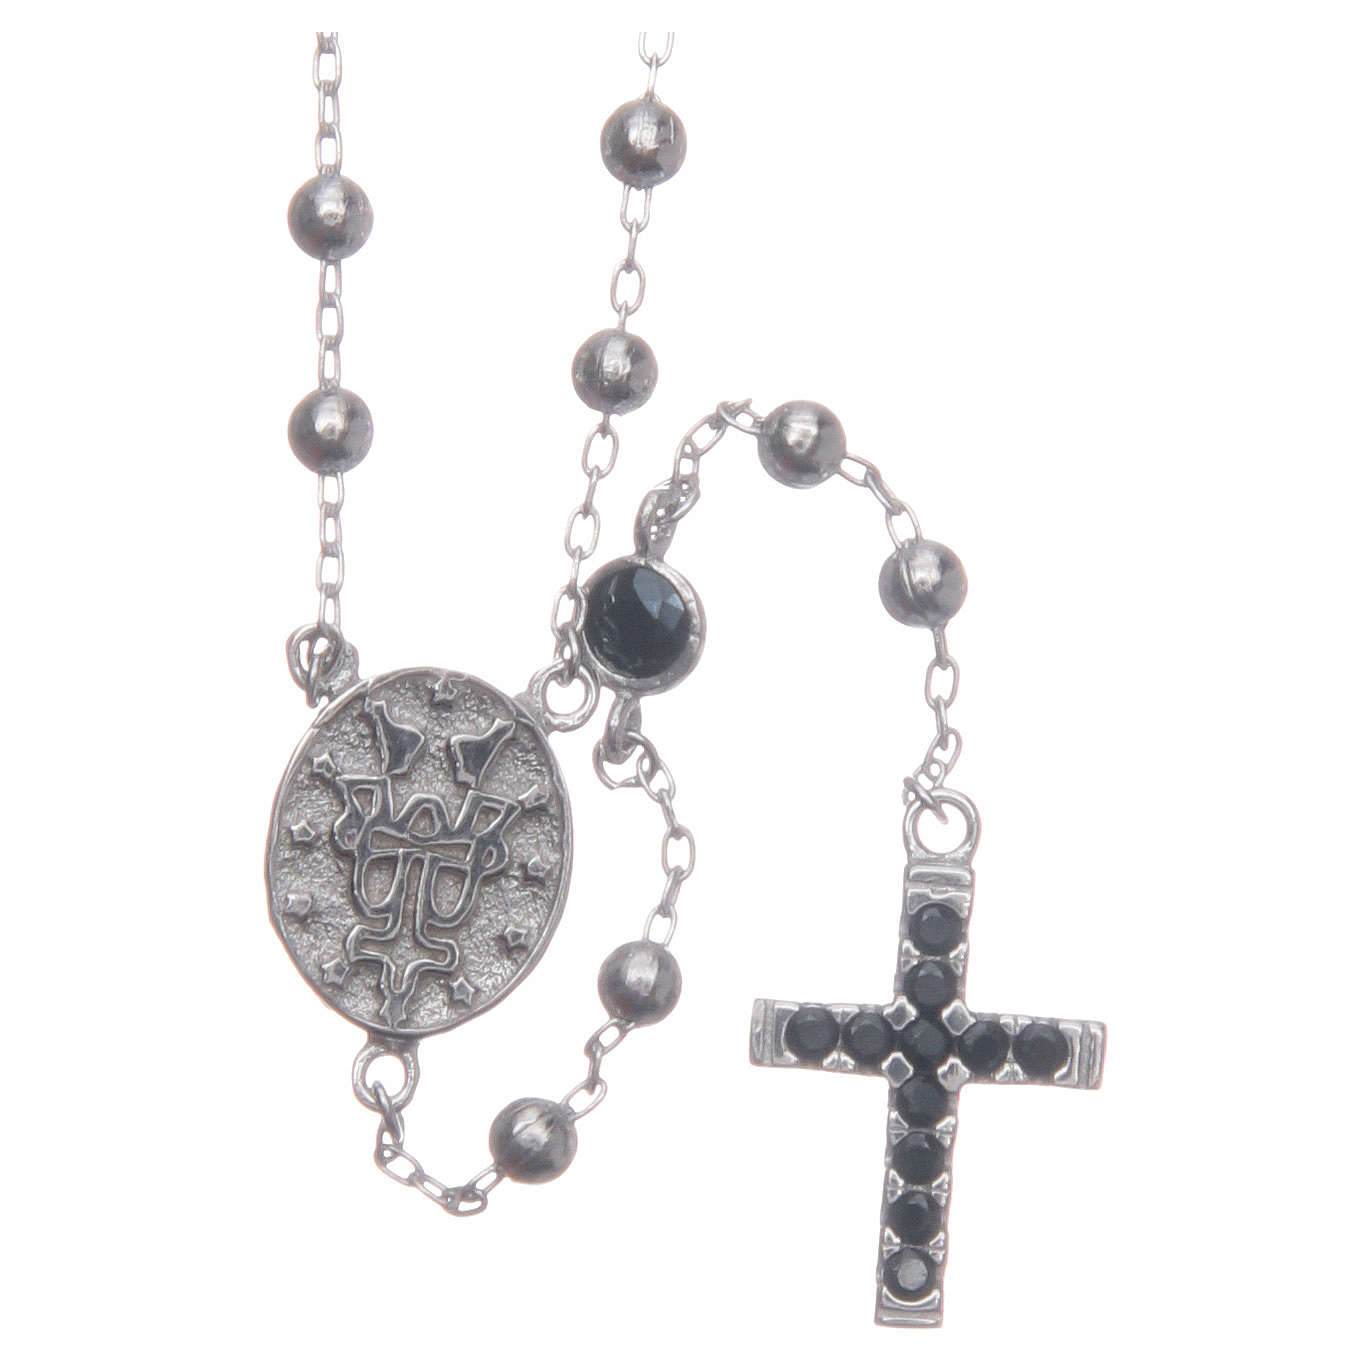 Rosary choker Saint Rita silver with black zircons in 925 sterling silver 4